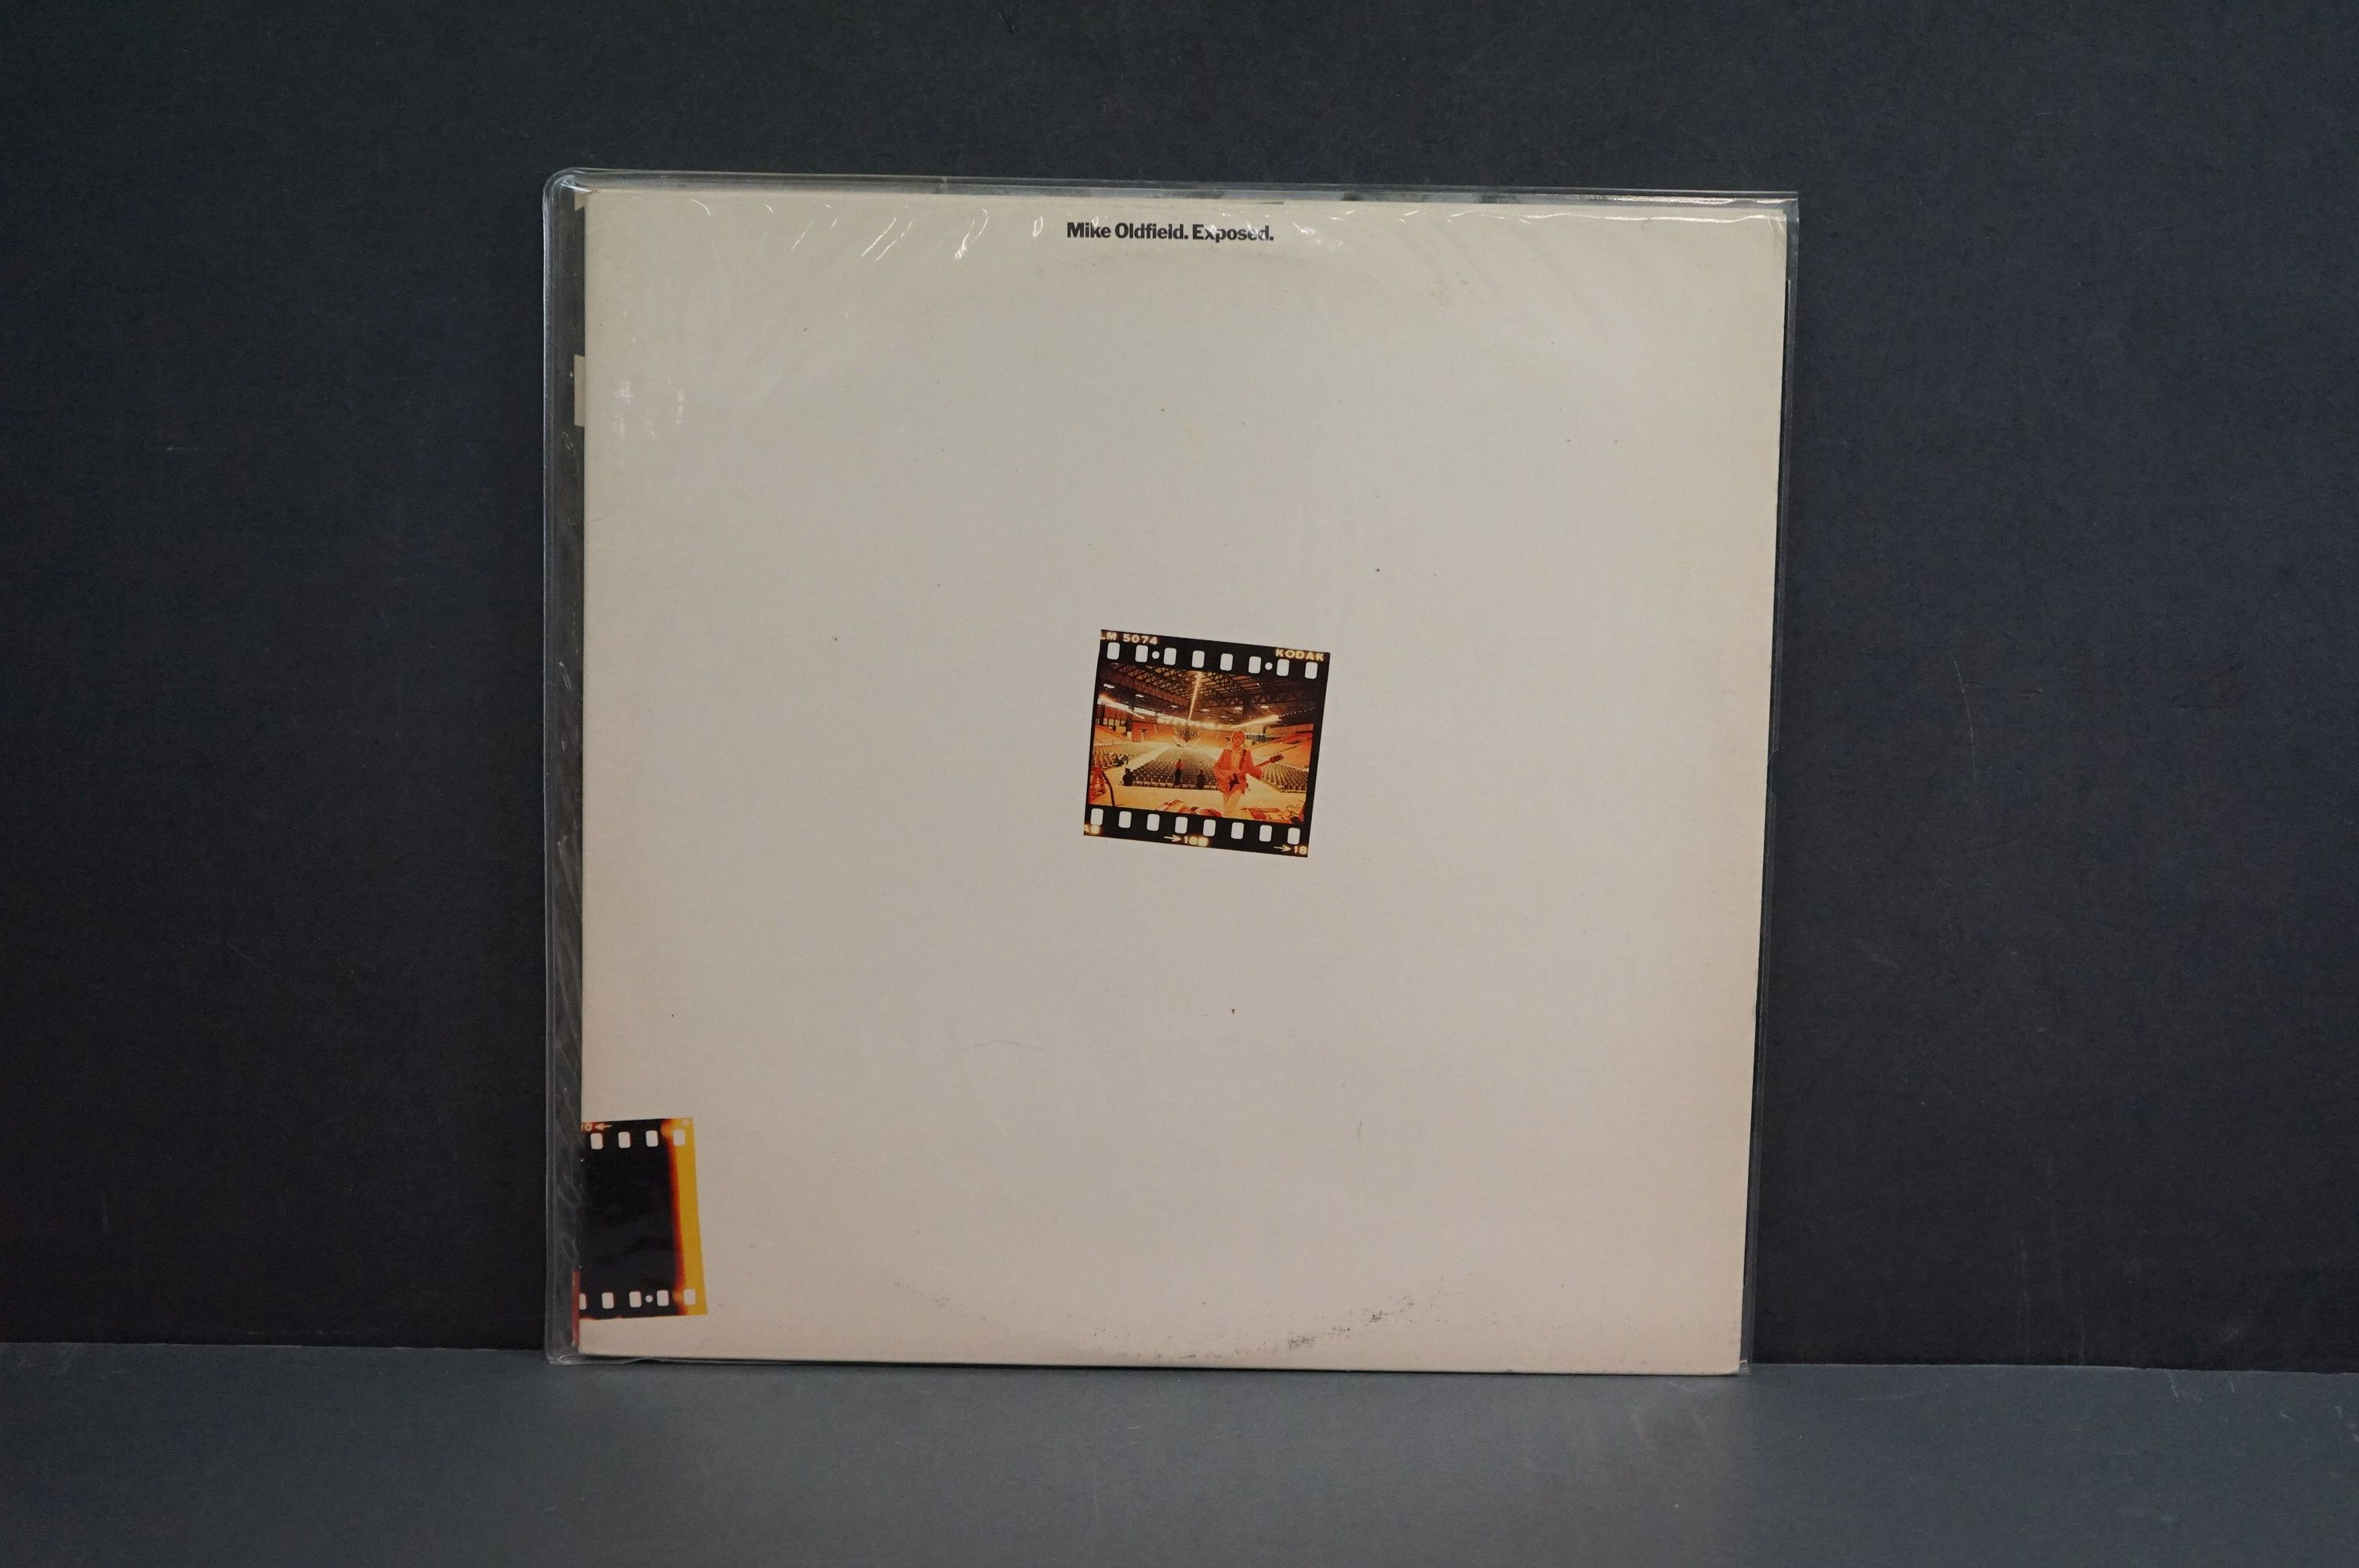 Vinyl - 14 Mike Oldfield LPs to include Tubular Bells, Five Miles Out, Best Of, Discovery etc, - Image 14 of 15